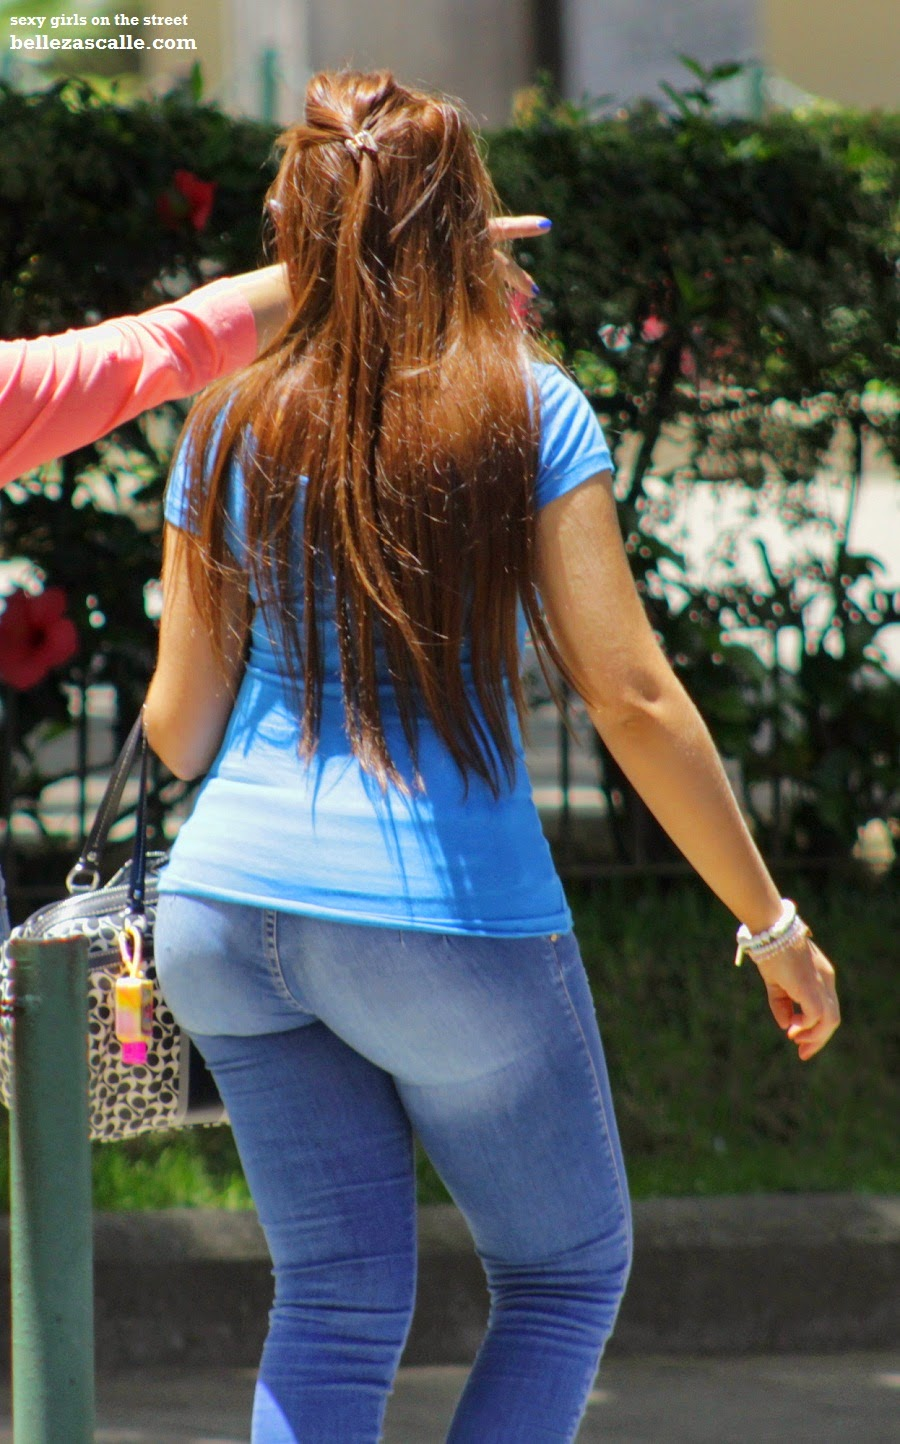 Sexy Girls On The Street, Girls In Jeans, Spandex And -8207